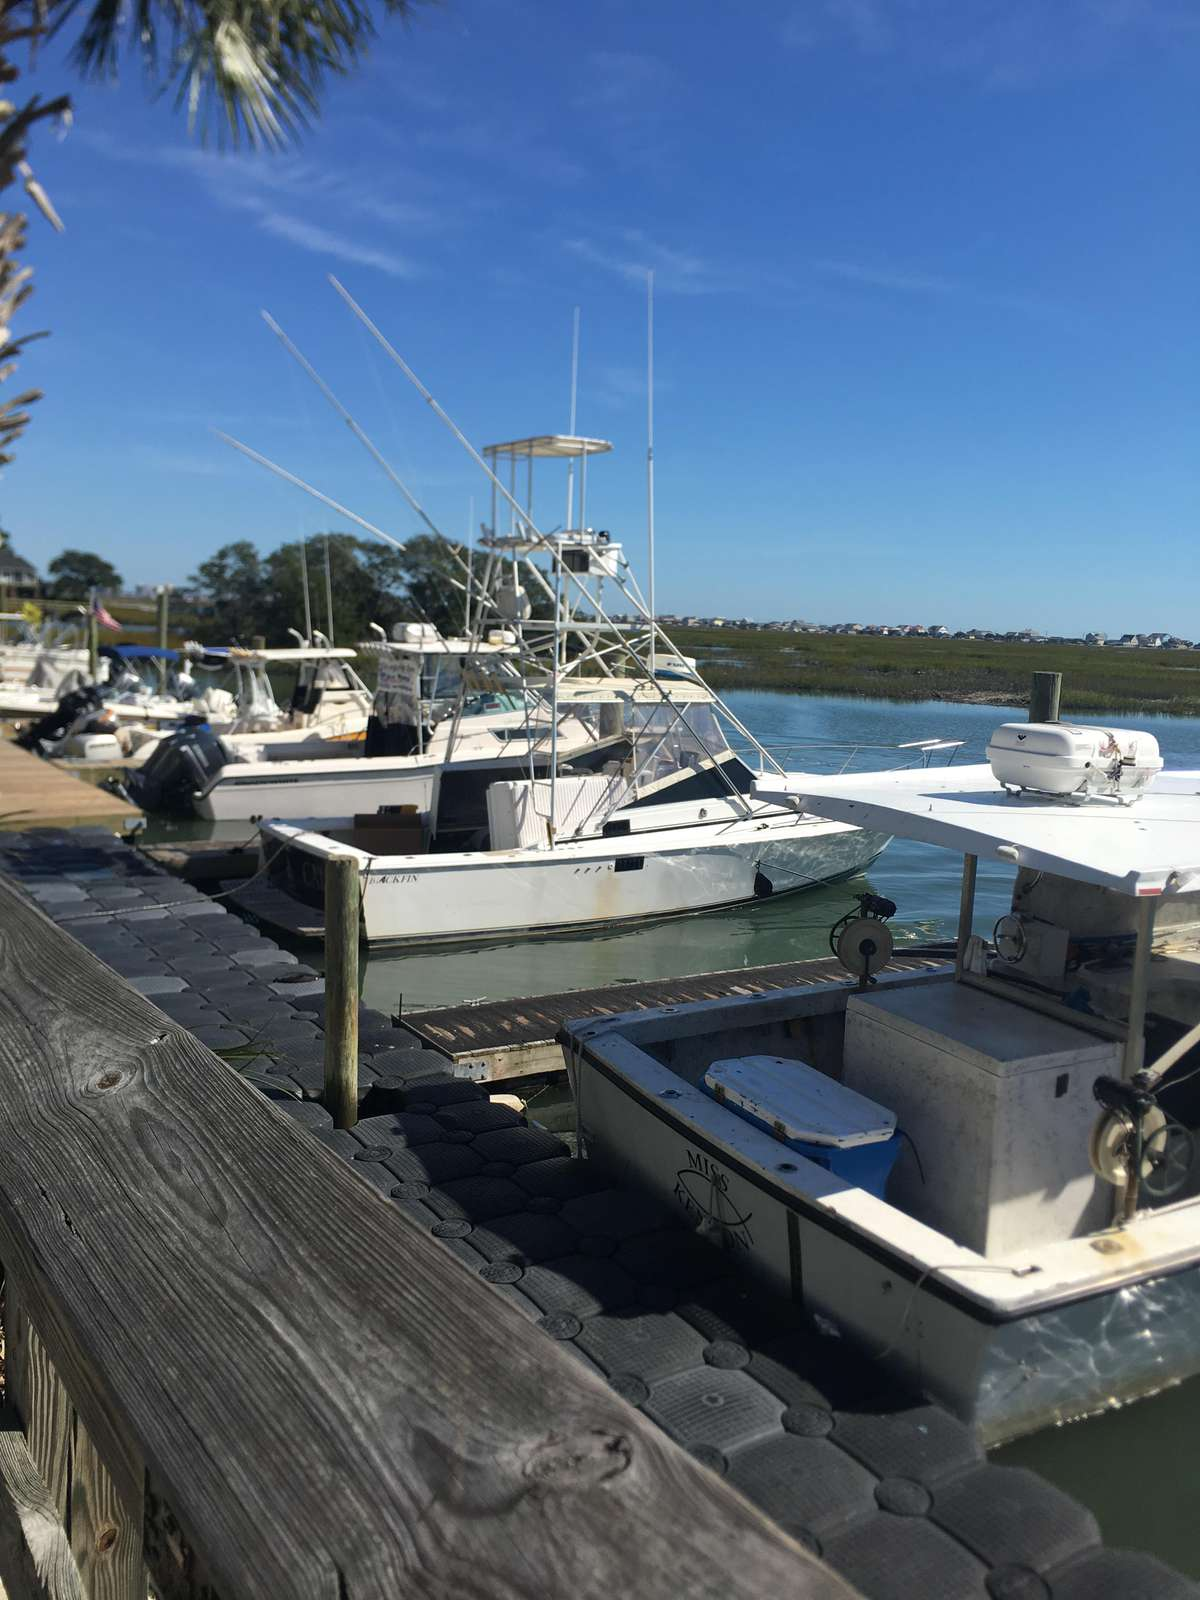 Take a Sunset cruise from Murrells Inlet